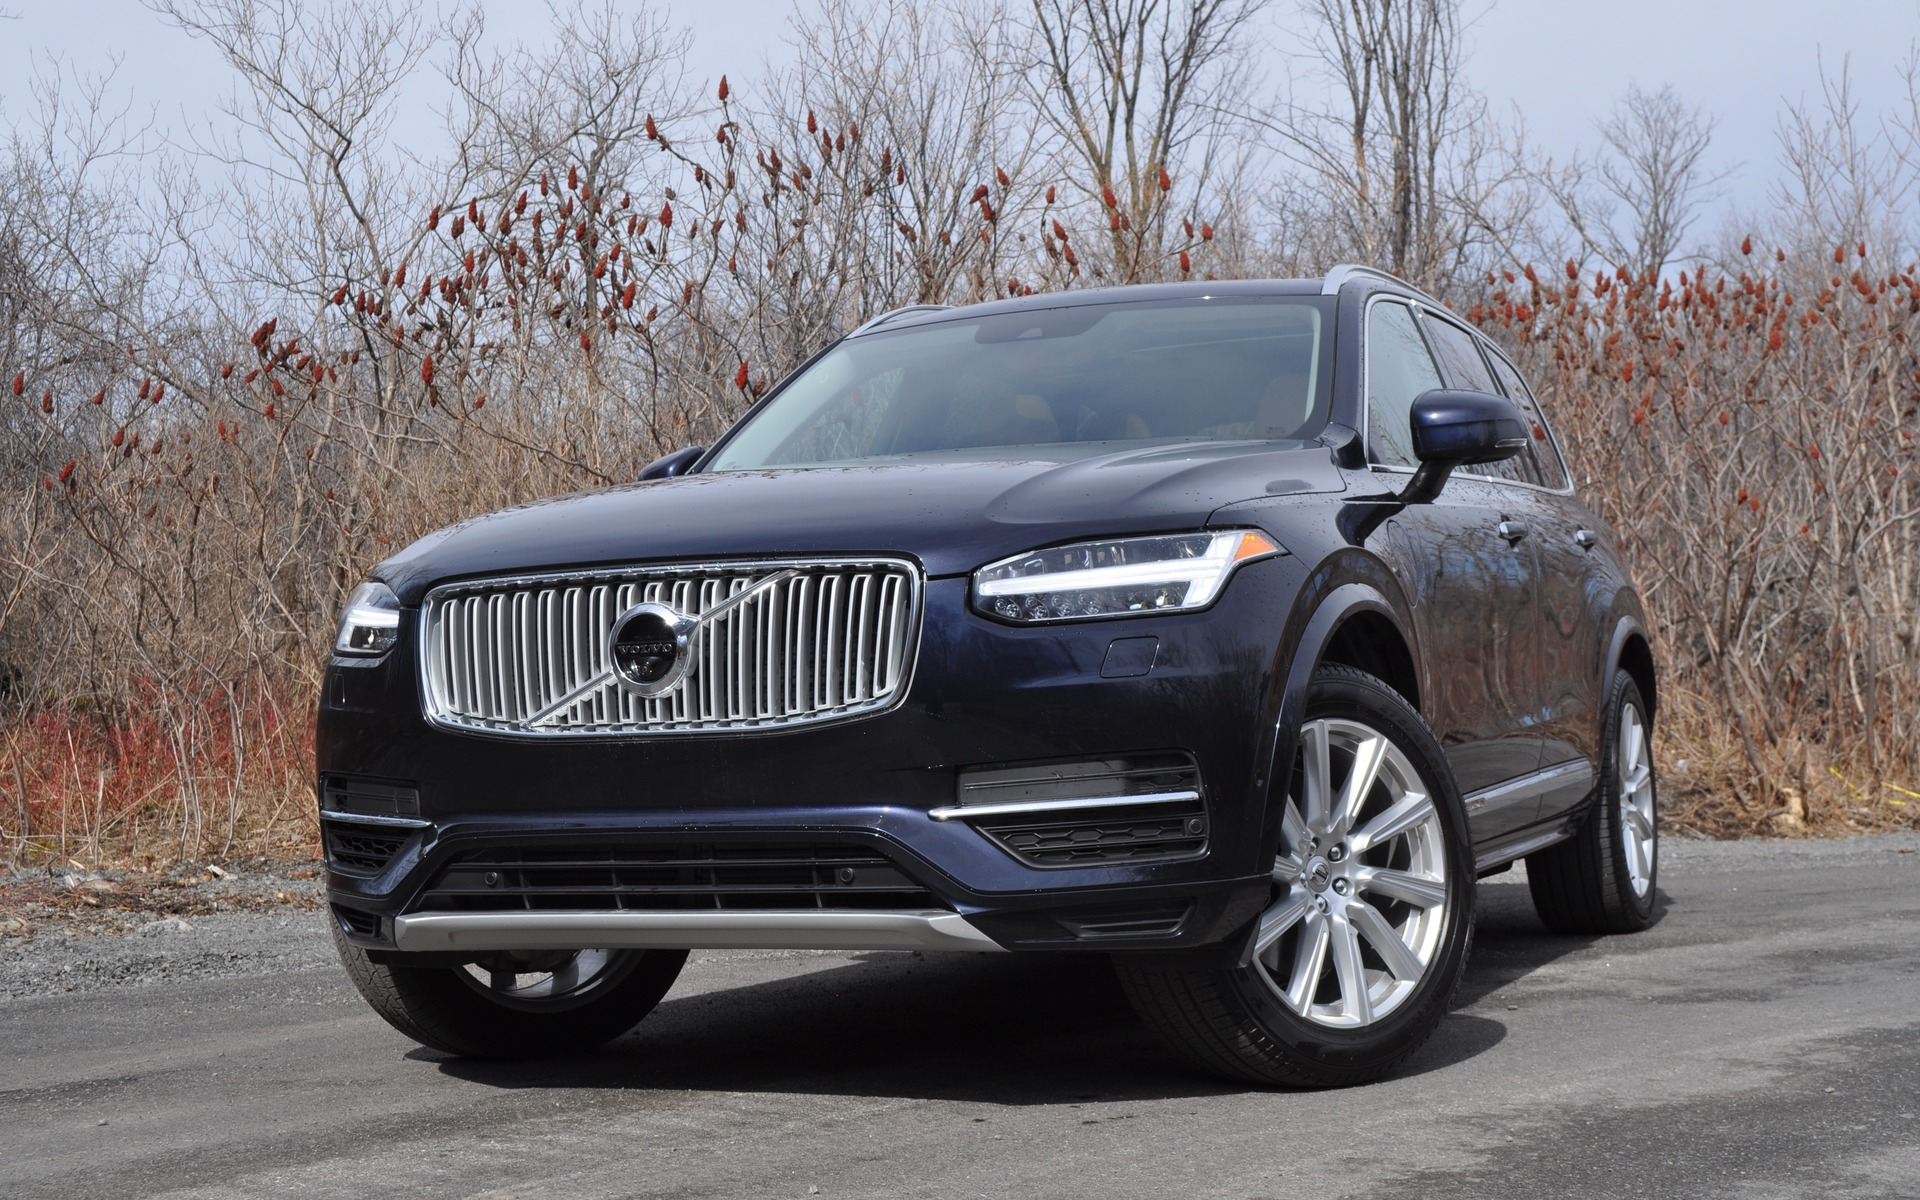 2016 Volvo XC90 T8 Inscription: Efficiency, luxury and performance